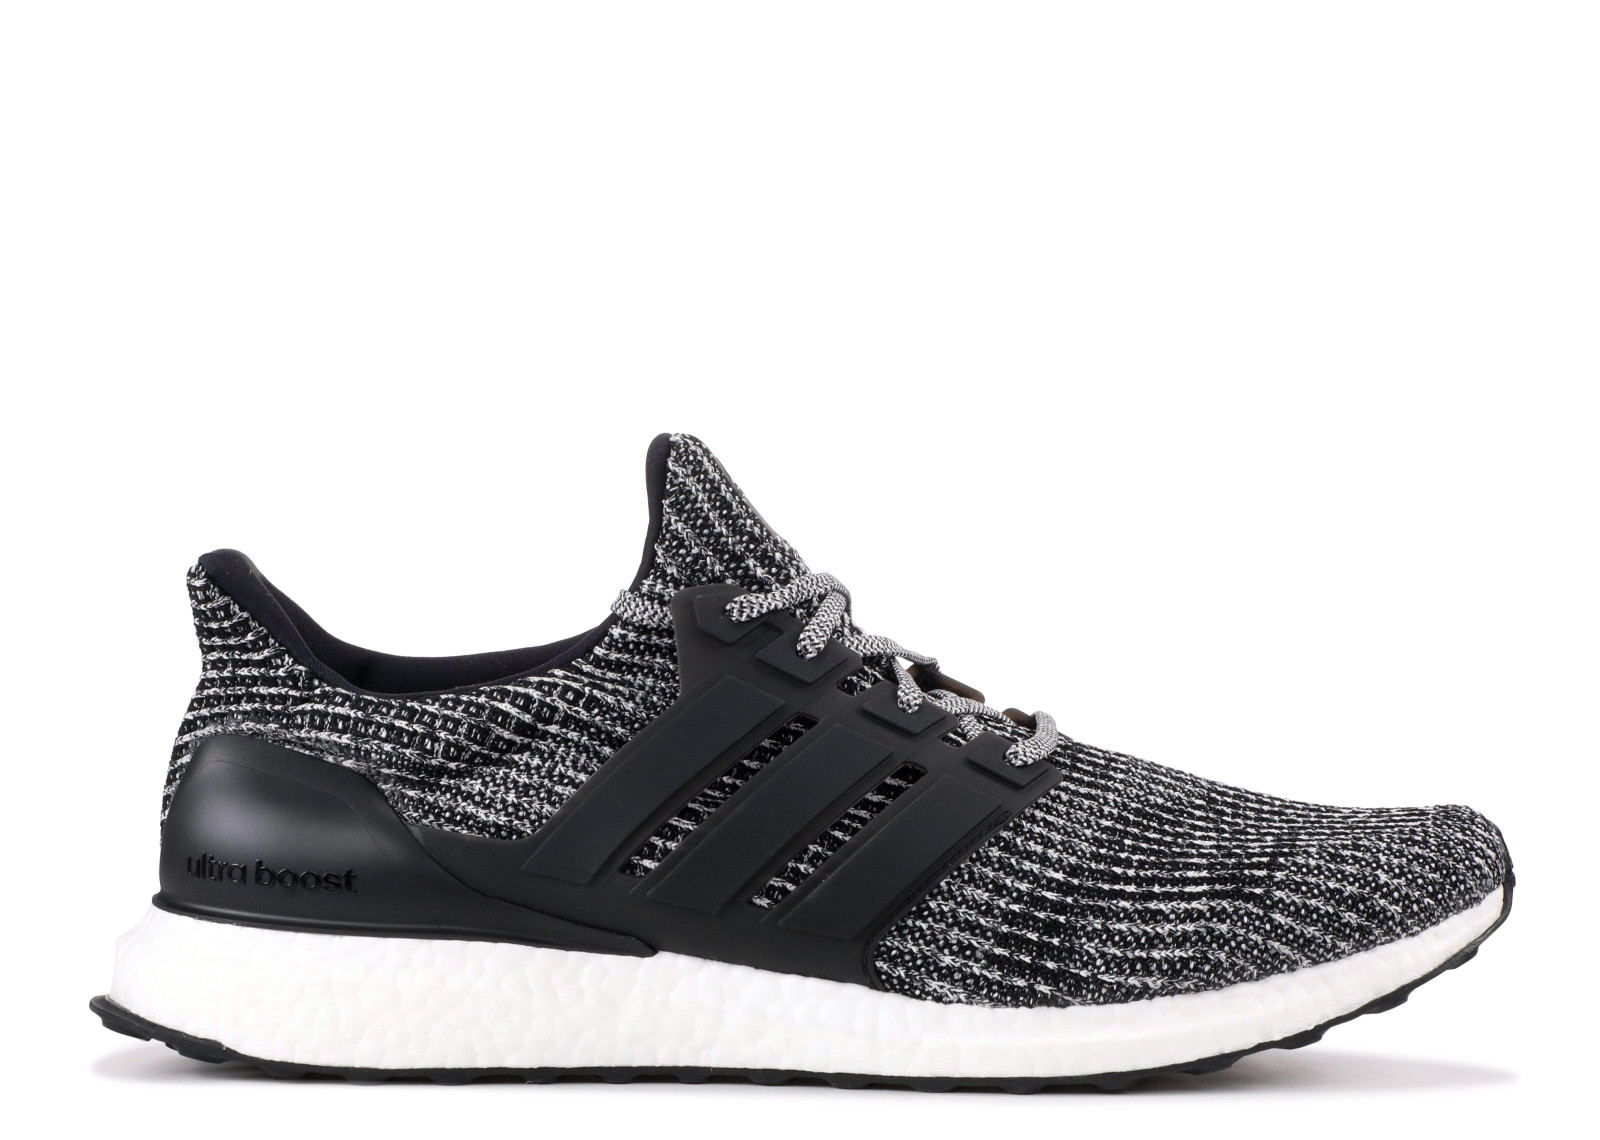 c98fb5549734c adidas Ultra Boost 4.0 Cookies   Cream 2.0